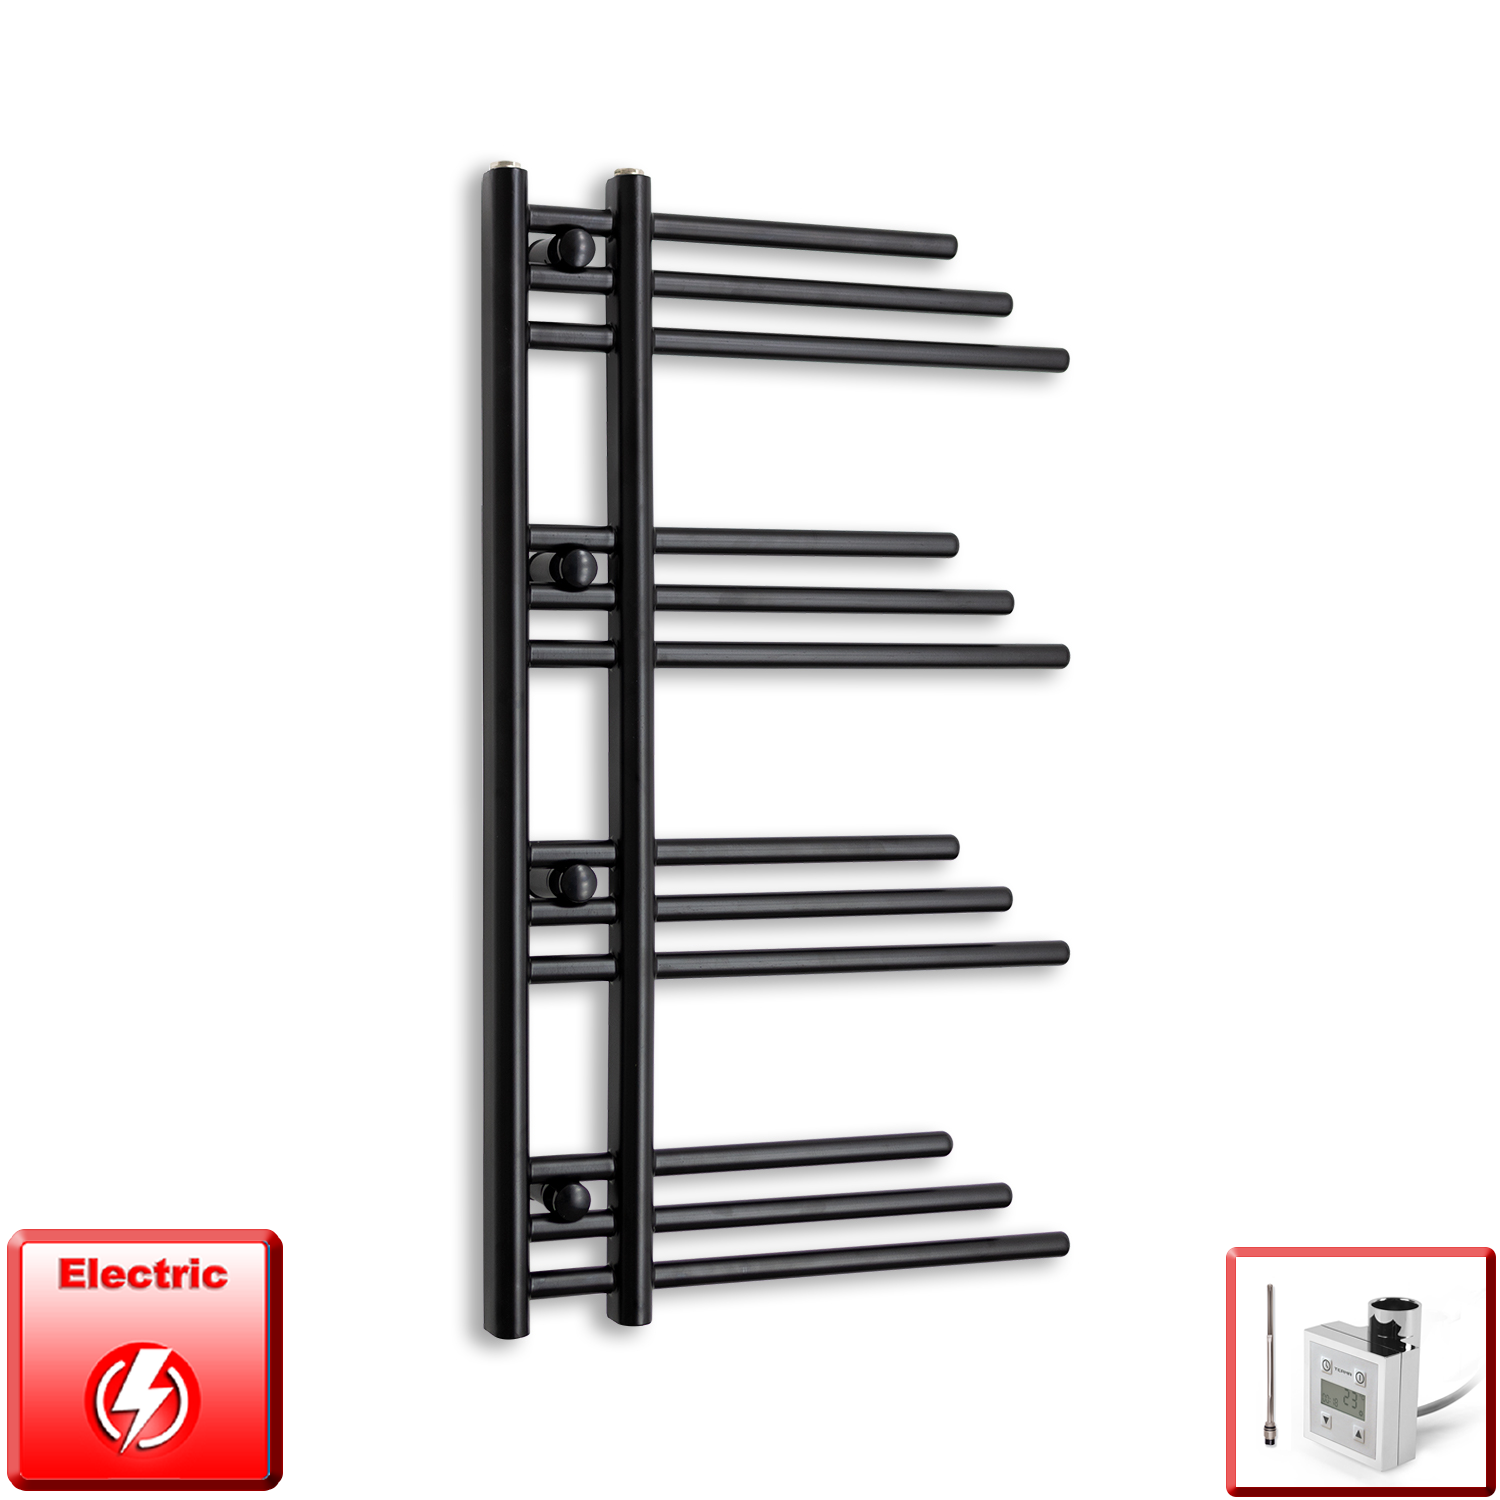 500mm Wide 900mm High Pre-Filled Black Electric Towel Rail Radiator With Thermostatic KTX3 Element